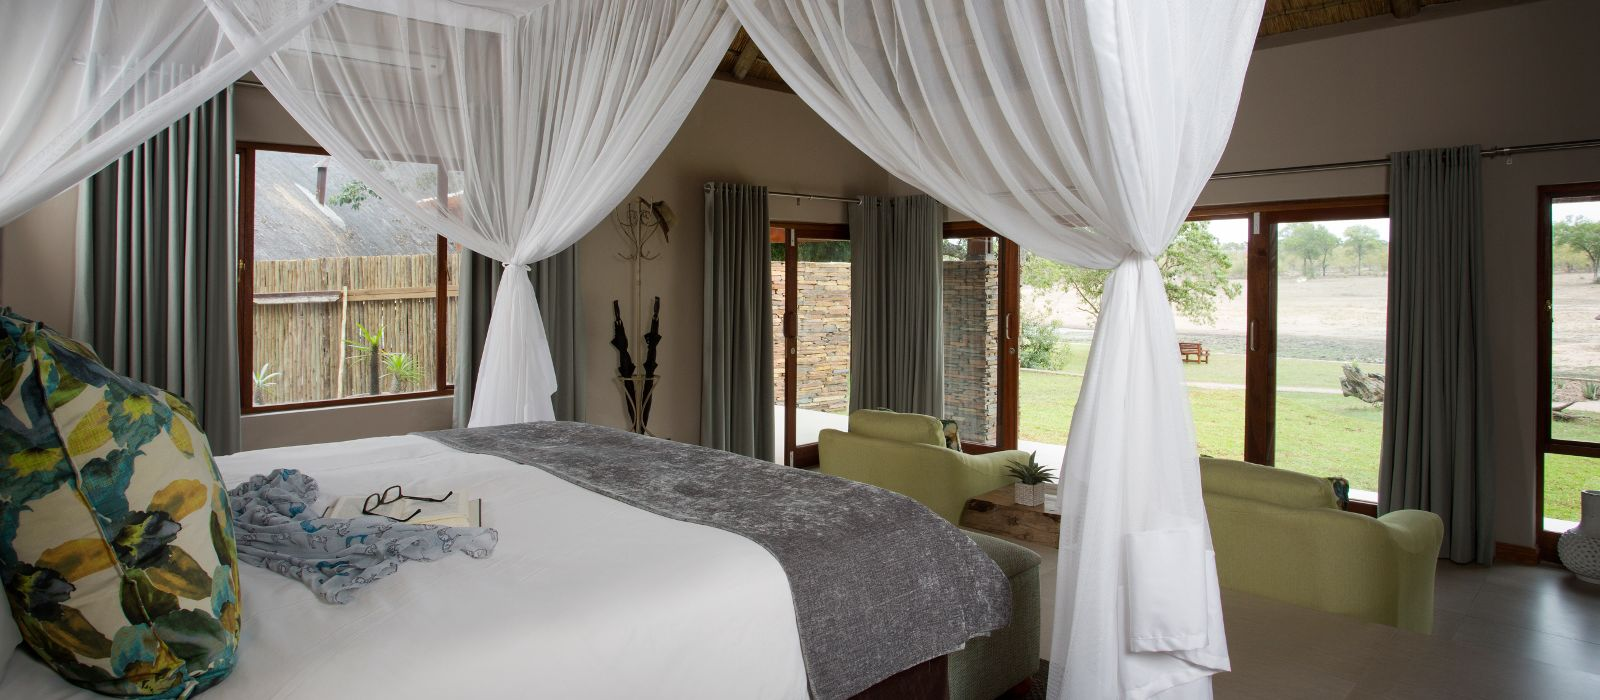 Hotel Arathusa Safari Lodge South Africa